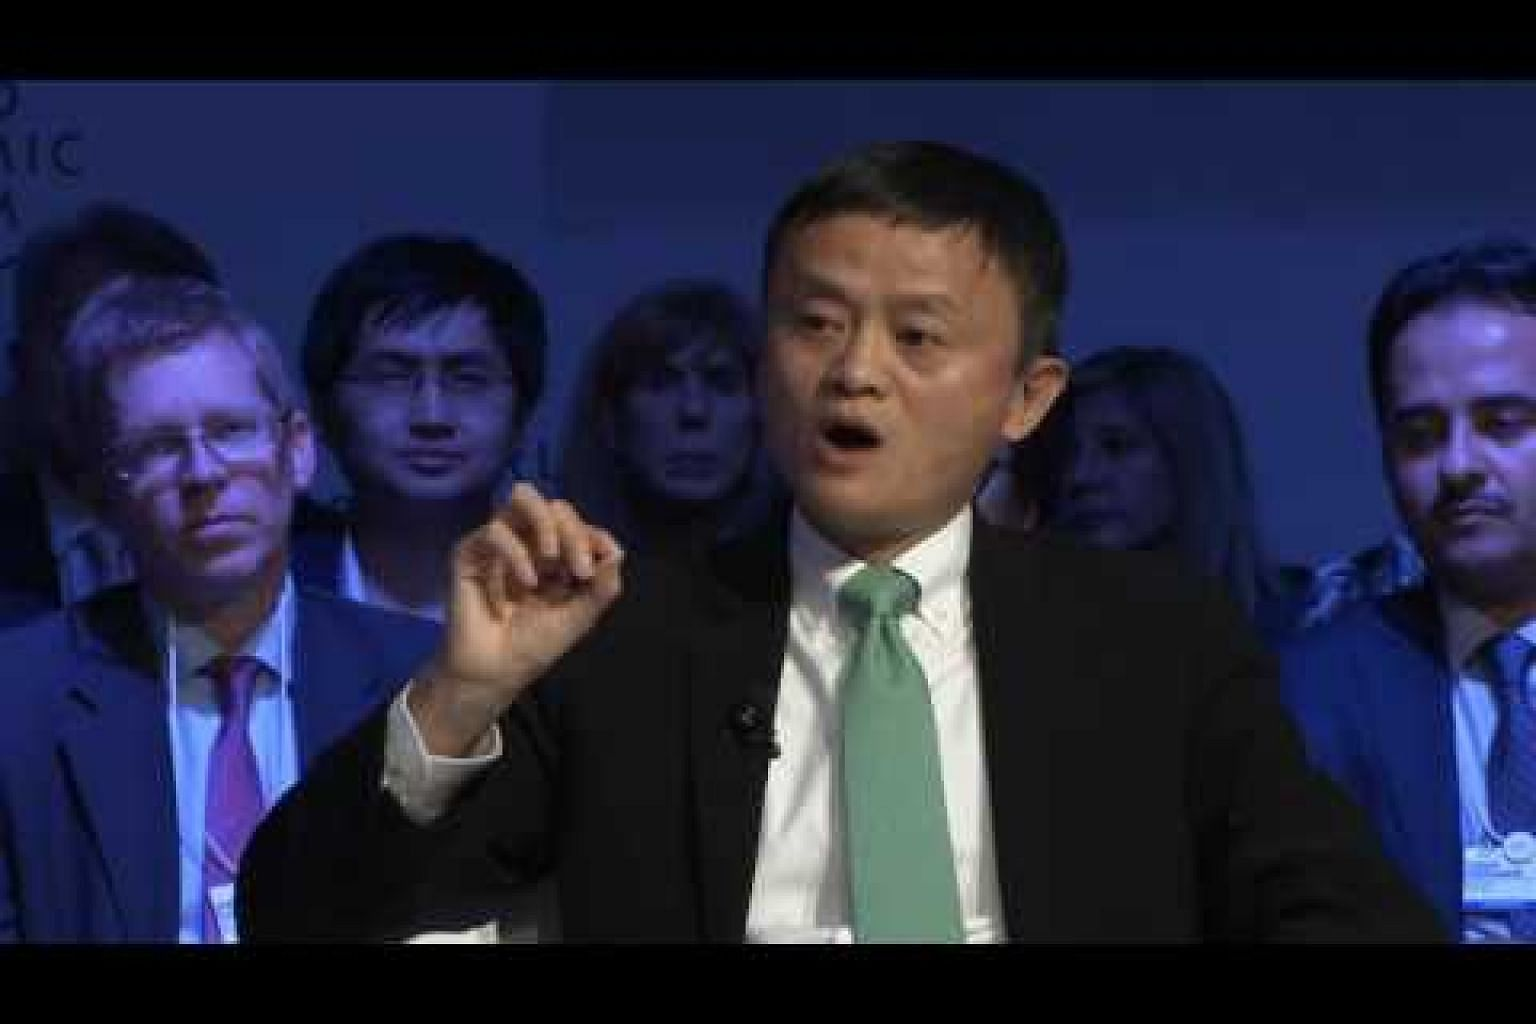 Davos 2017 - An Insight, An Idea with Jack Ma